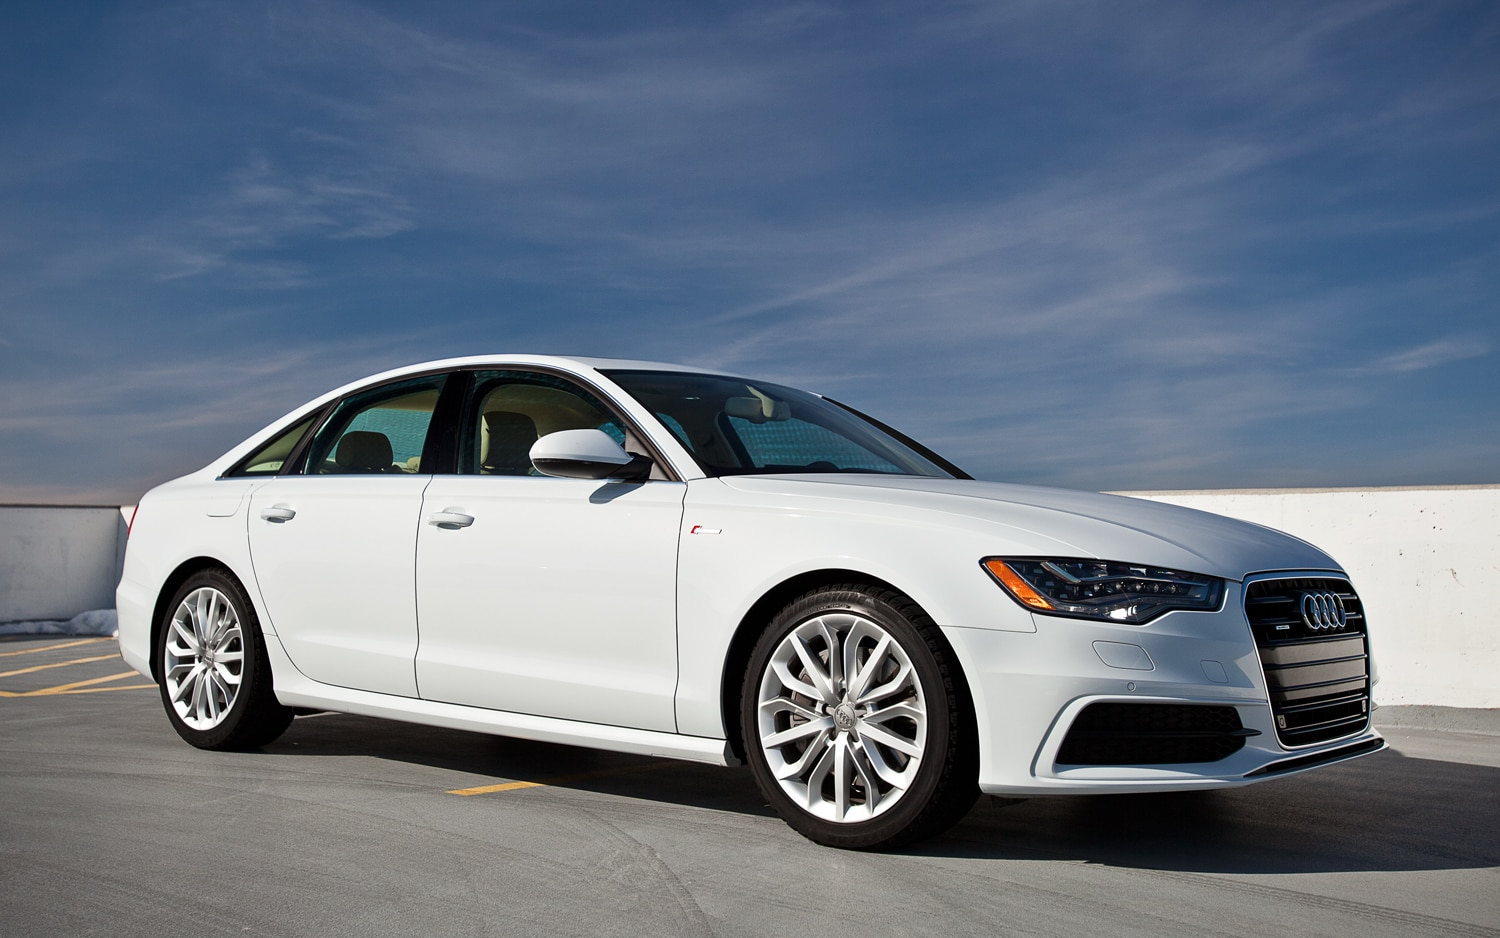 2012 Audi A6 Front Right Side View2